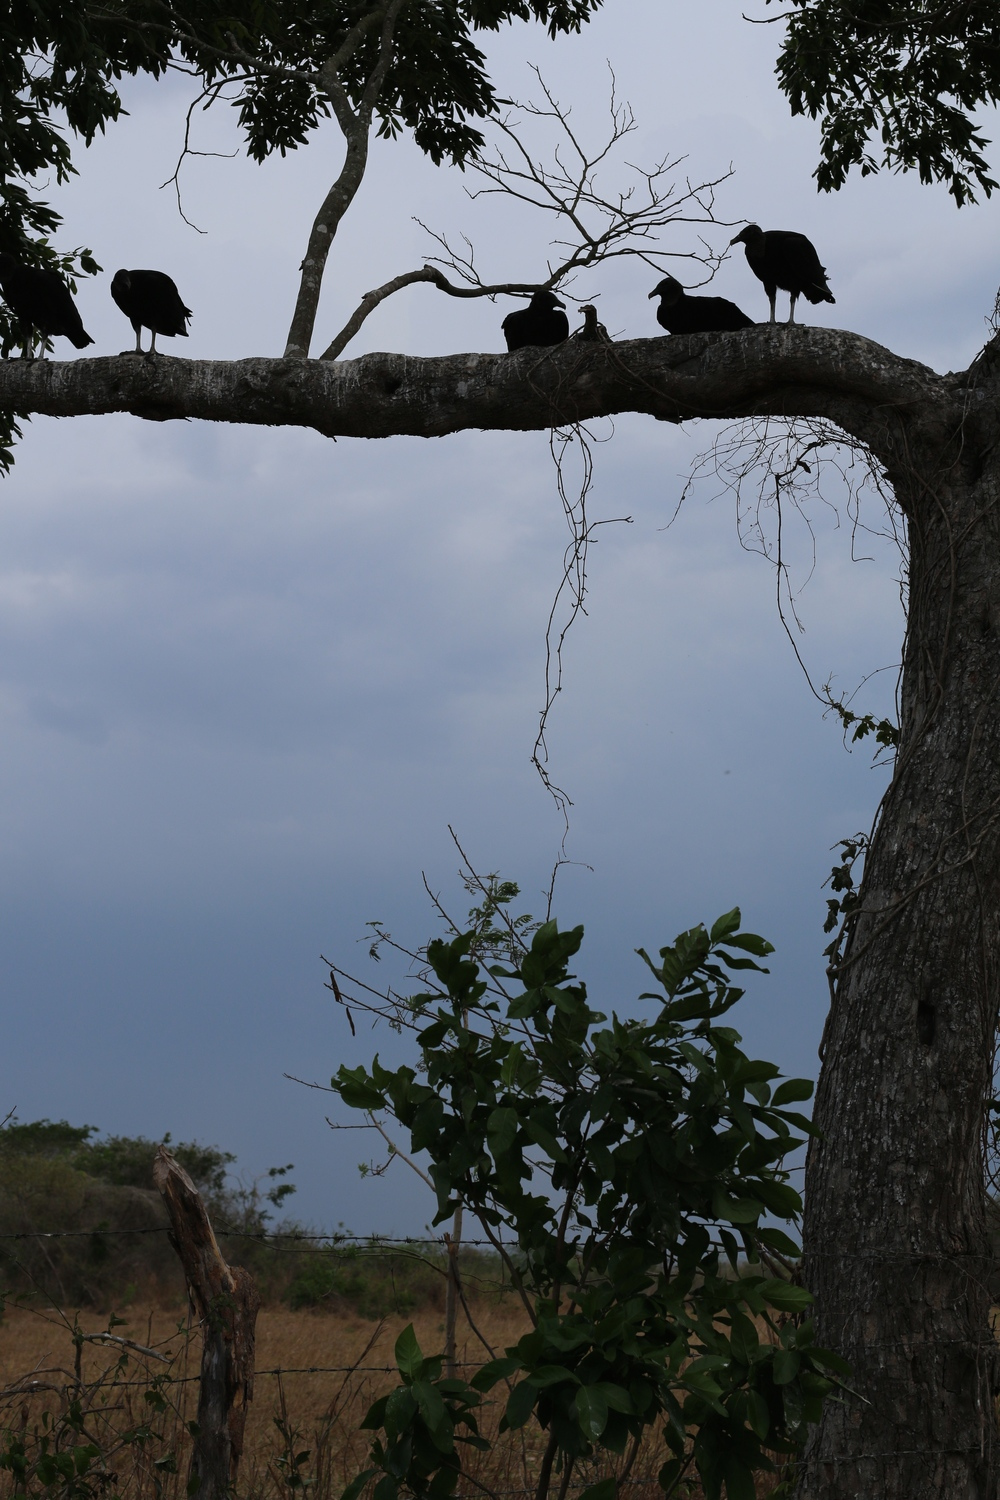 Vultures awaiting some death alongside the highway